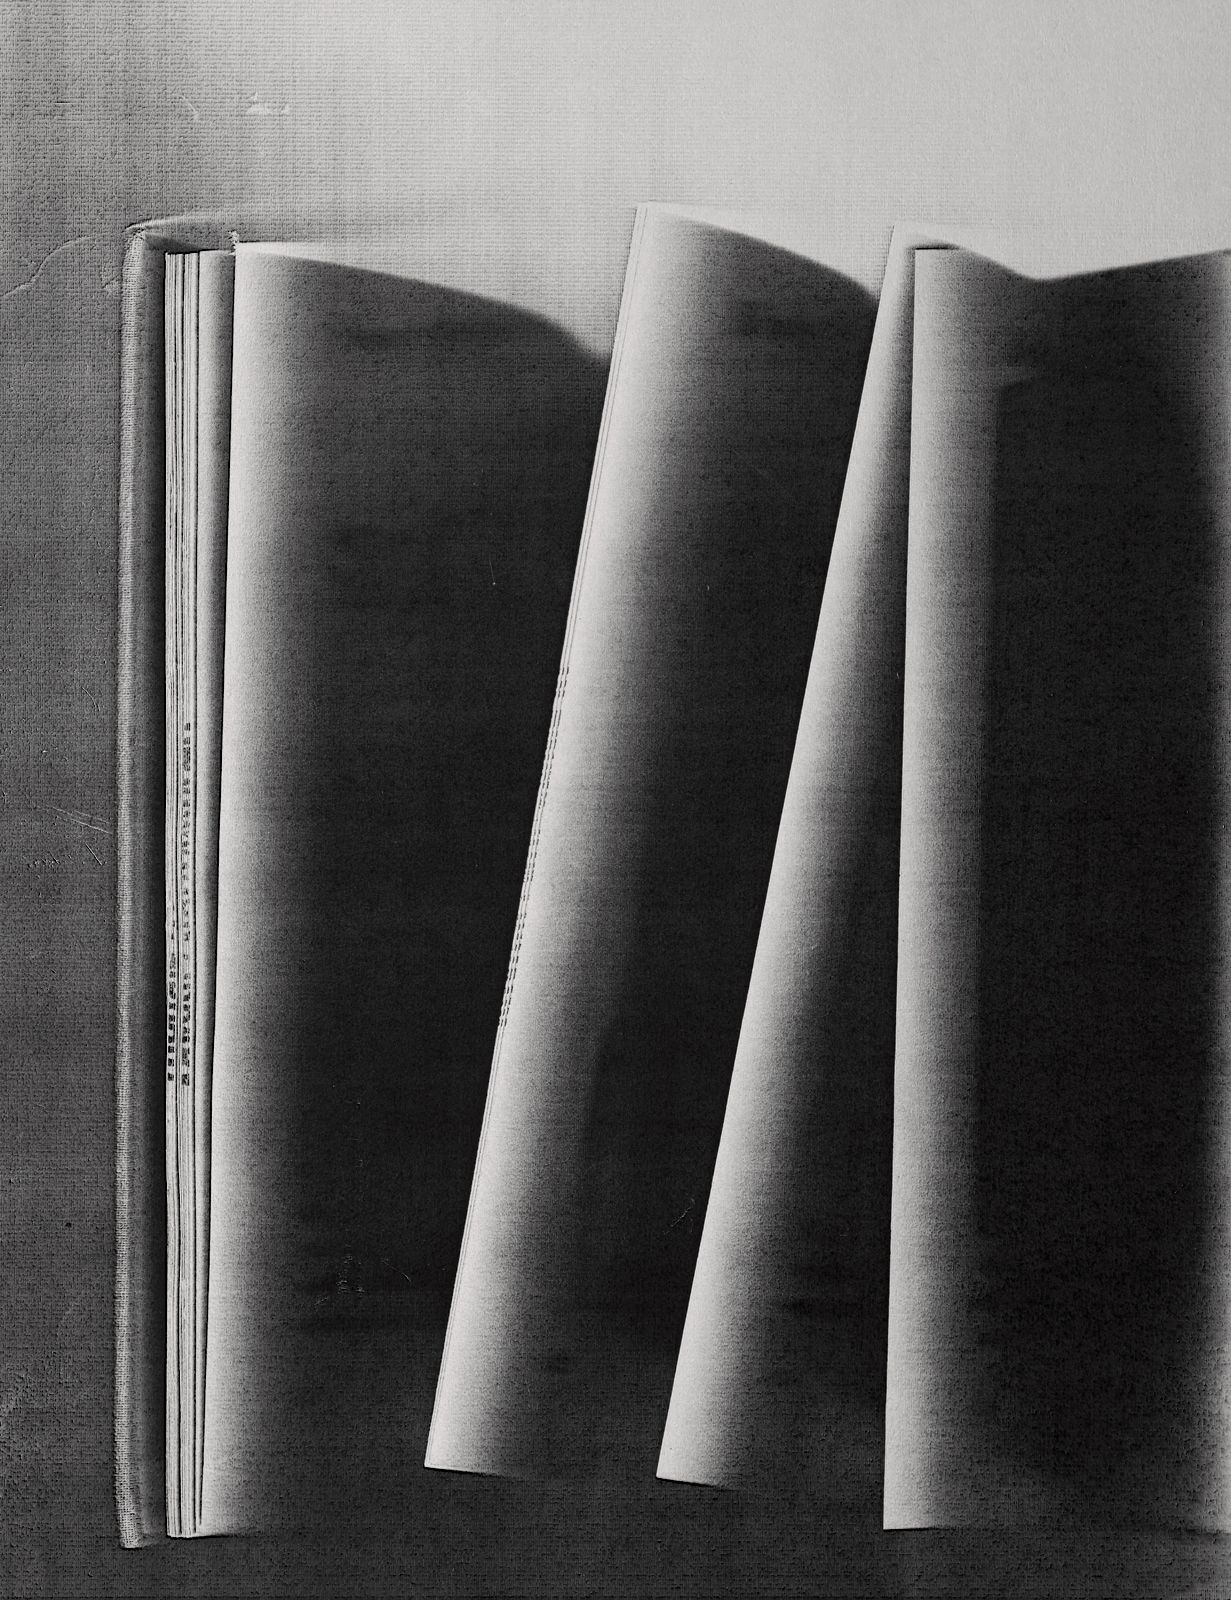 Chiaroscuro, from the series Library Copies, 2017. Archival pigment print, 30 x 24 inches.